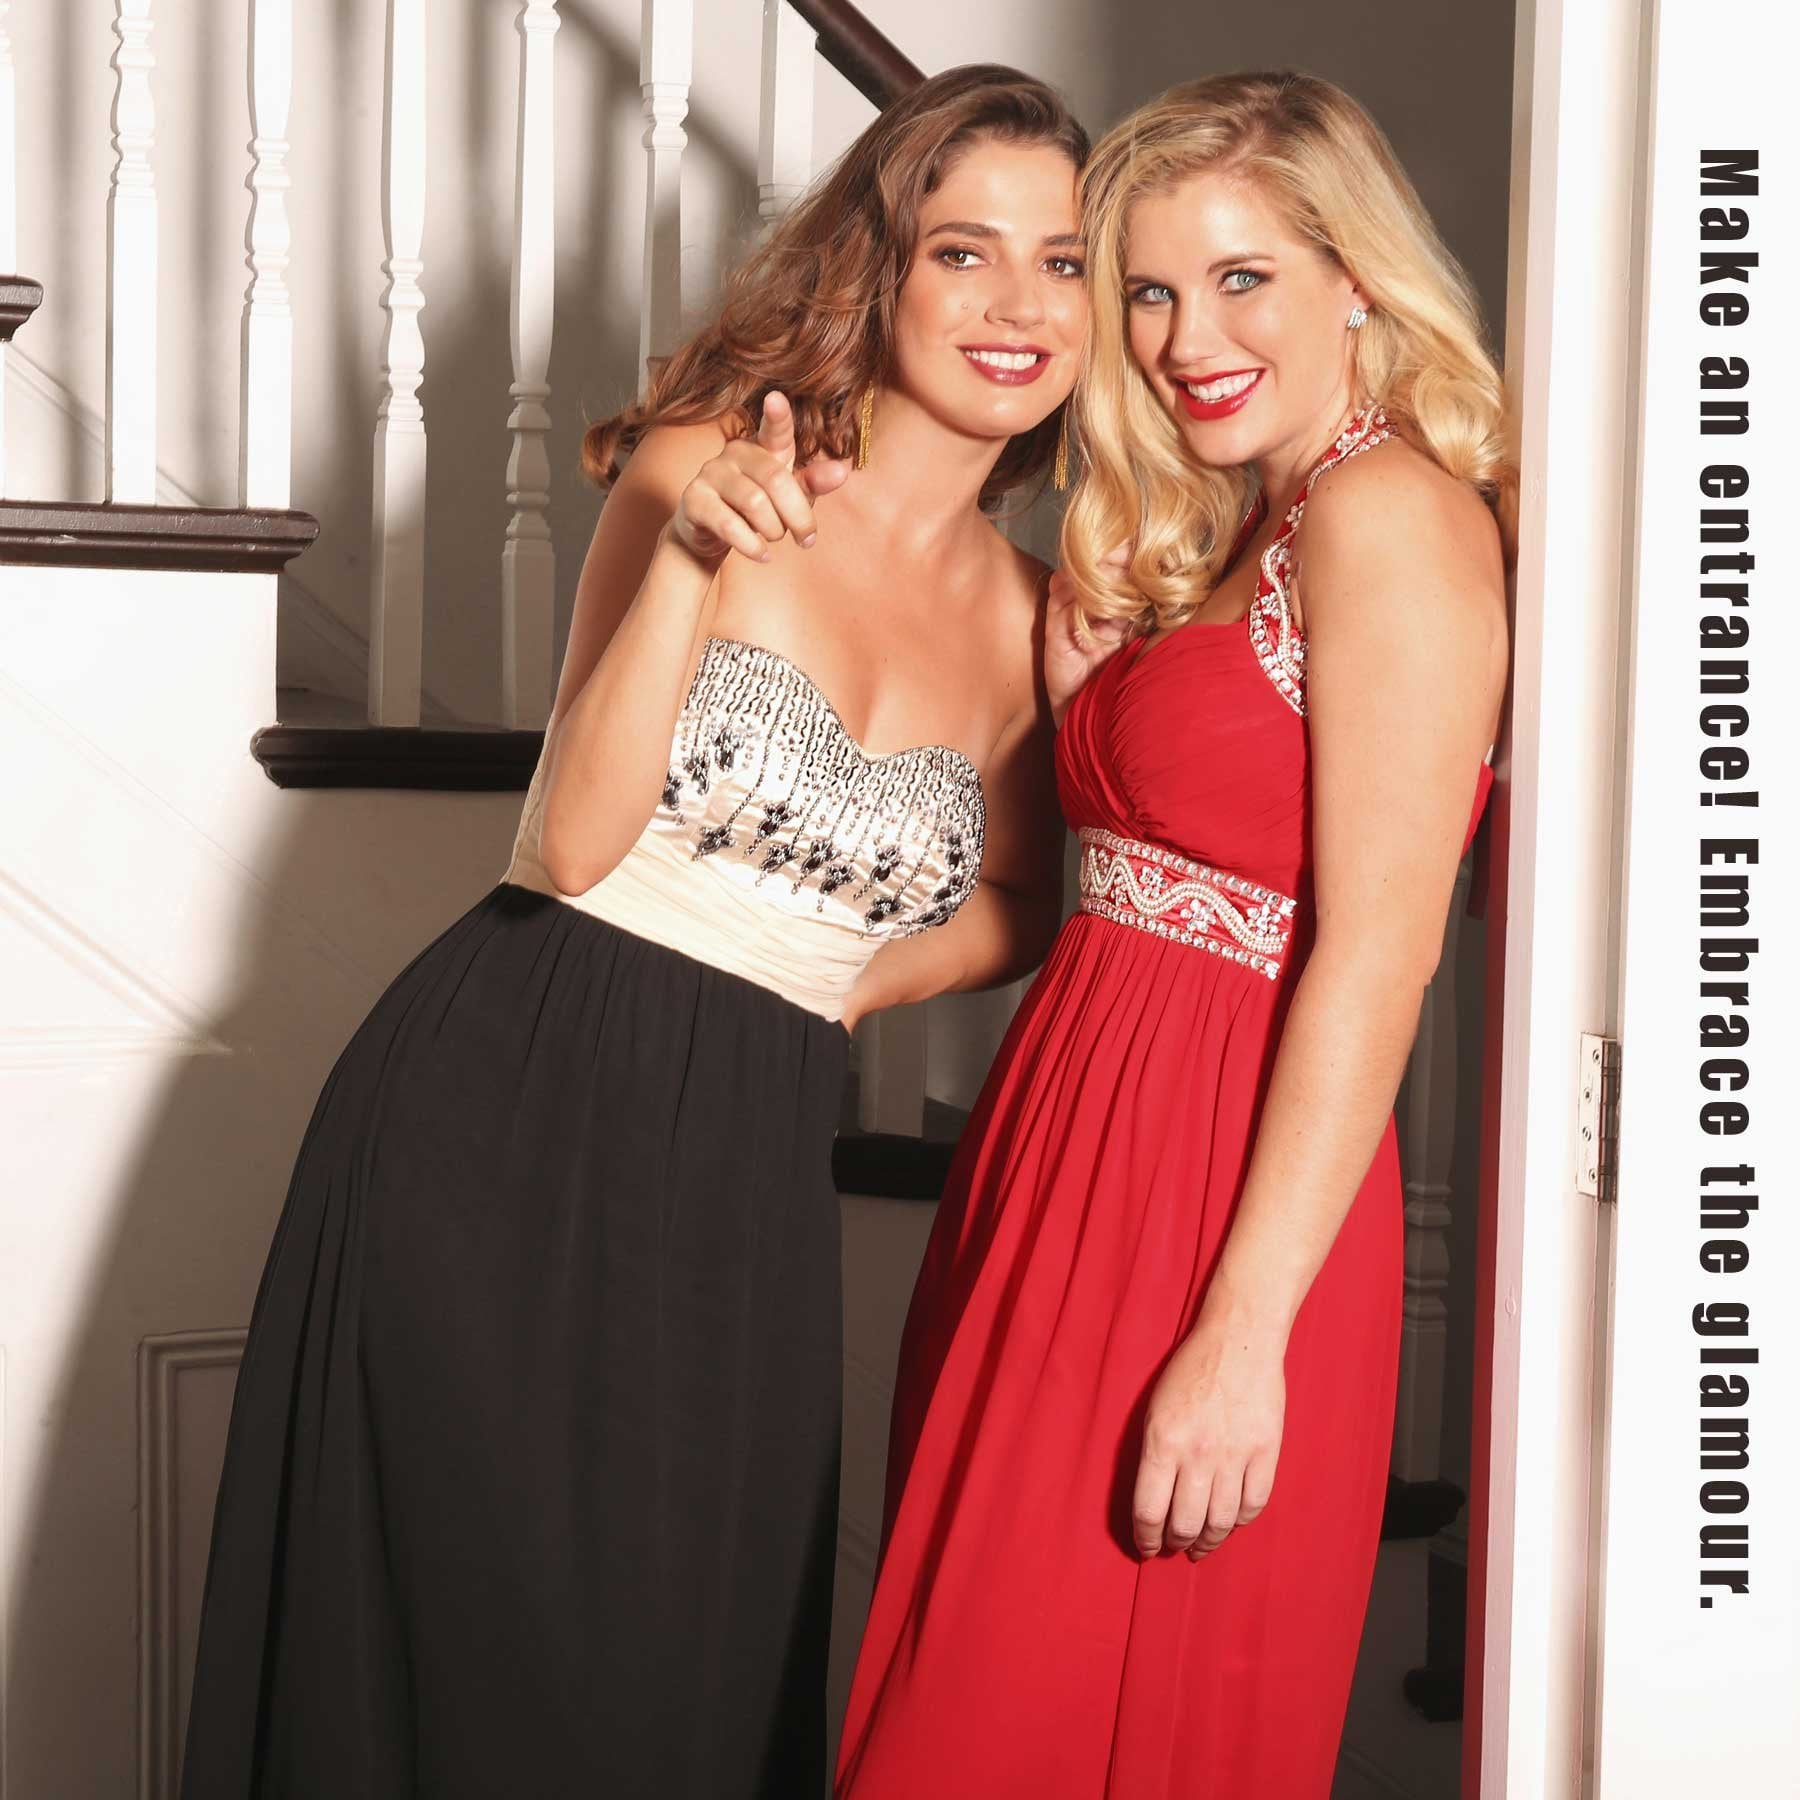 e6d8862da39 Make an entrance on the big night with our collection of stunning prom  dresses and eye-catching accesories. Let your outfit take the centre stage  and well ...